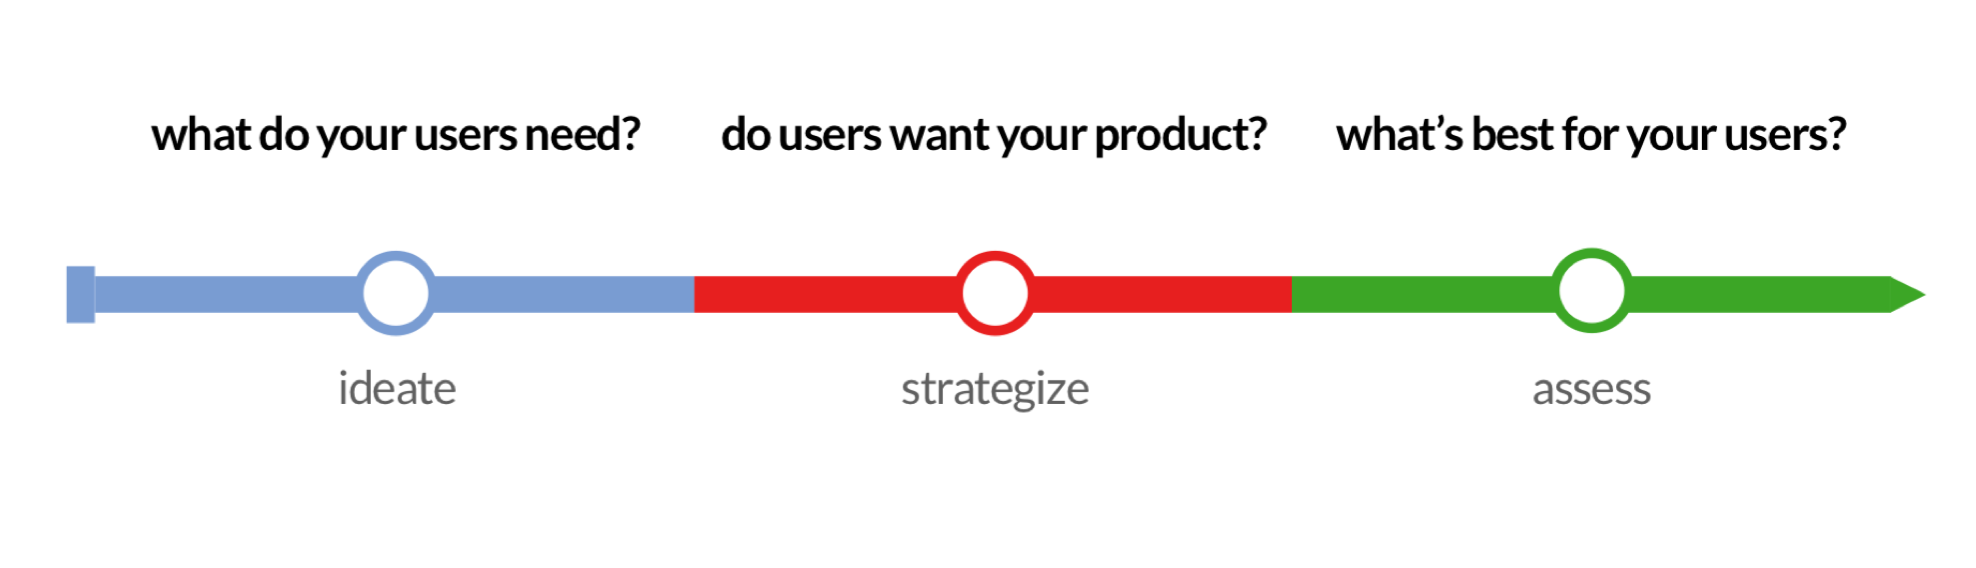 "an image of an arrow. First, along the arrow is the section ""ideate"" with the question ""what do your users need?"". Next, the middle section is ""strategize"" with the question ""do you users want your product?"". The final section is ""success"" with the question, ""what's best for your users?"""